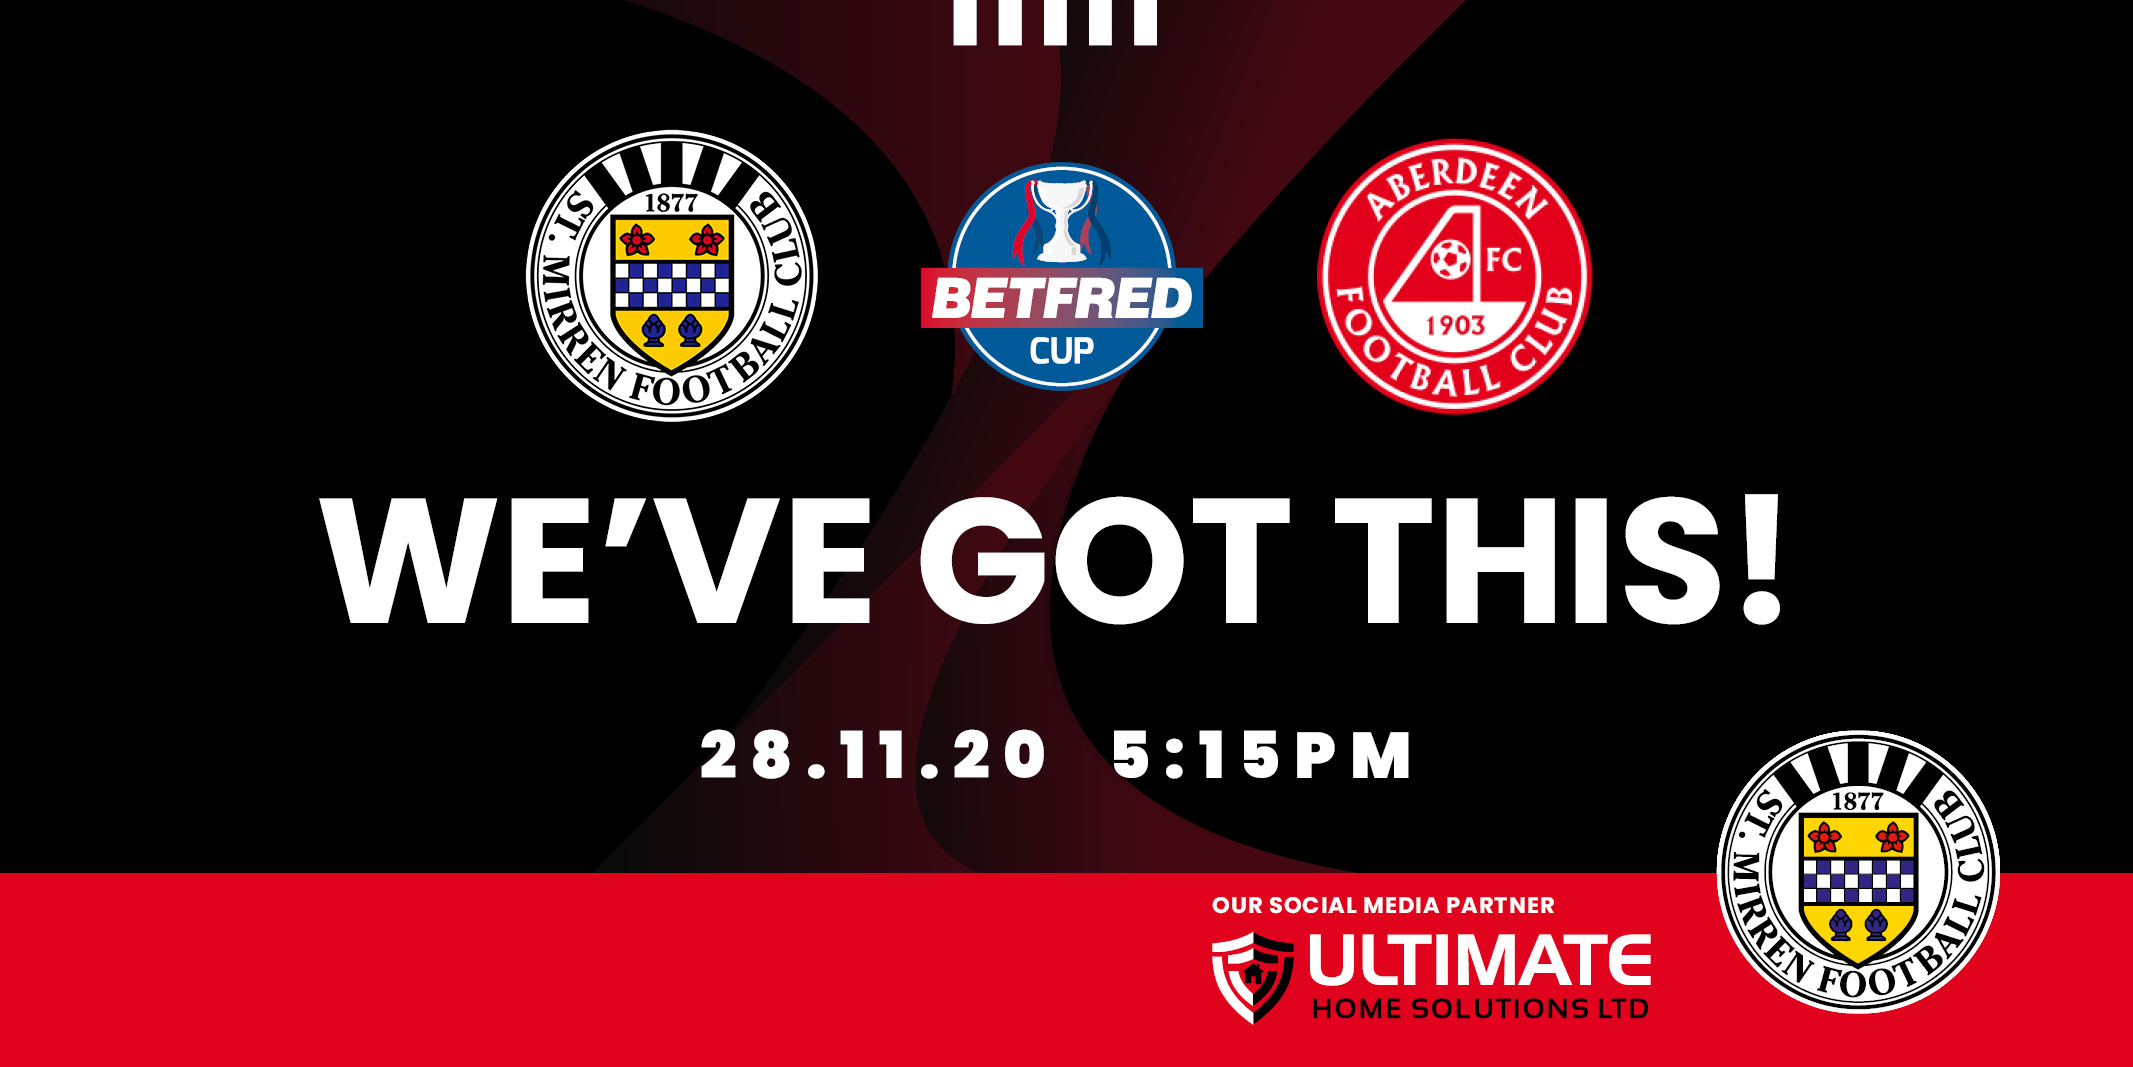 Up next: St Mirren v Aberdeen (28th Nov)